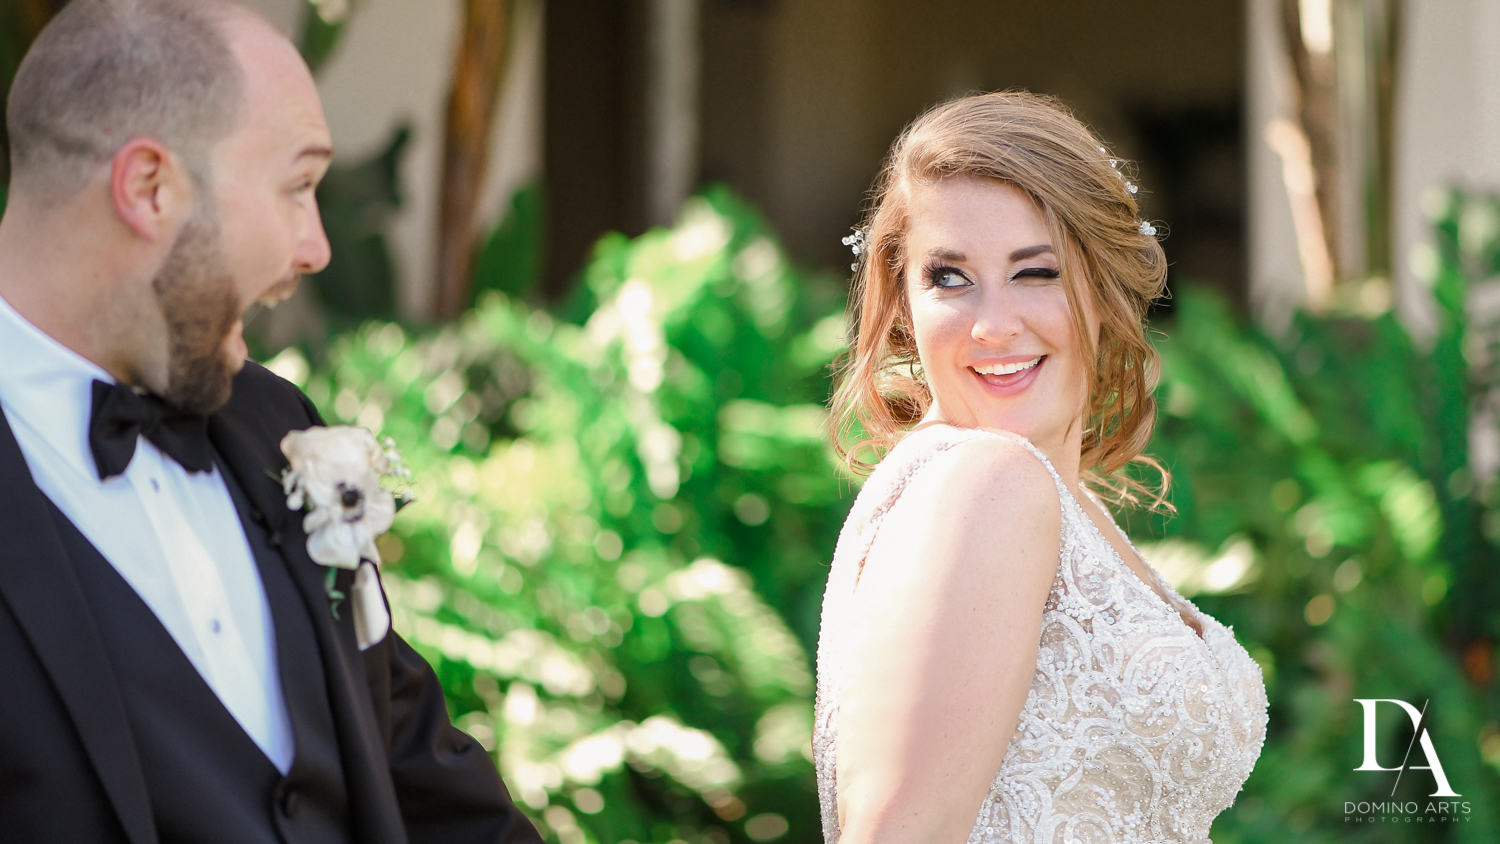 Fun bride and groom at Romantic Outdoors Wedding at Woodfield Country Club in Boca Raton, Florida